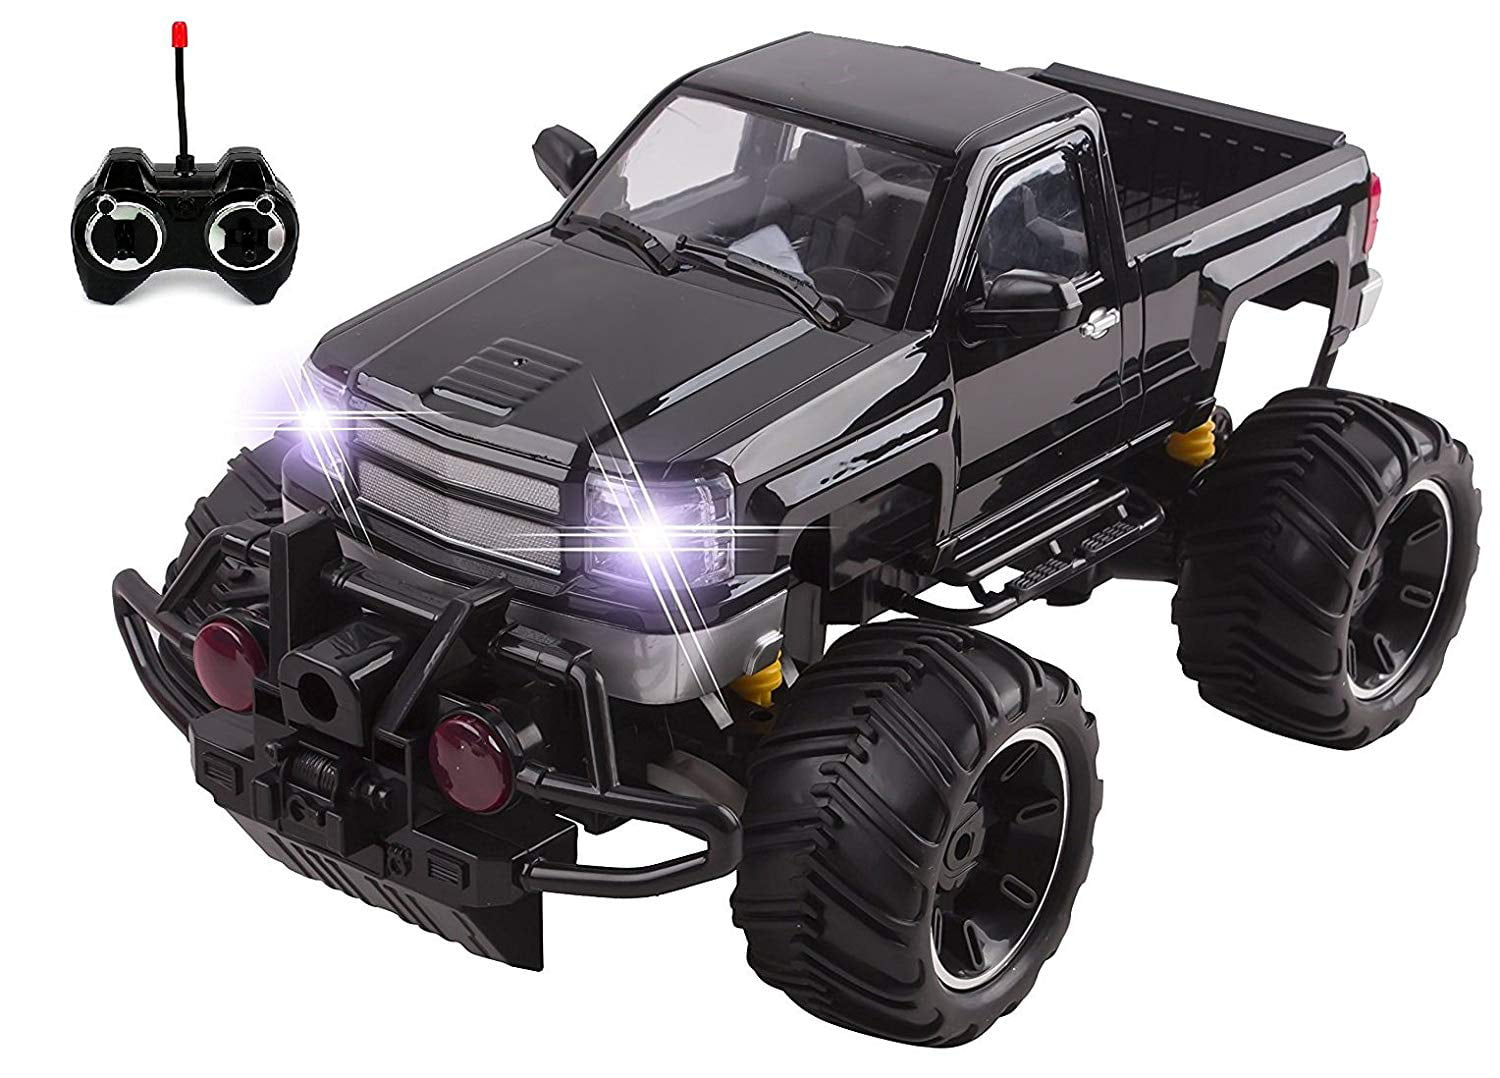 Big Wheel Beast RC Monster Truck Remote Control Doors Opening Car Light Up With LED Headlights Ready to Run... by Vokodo